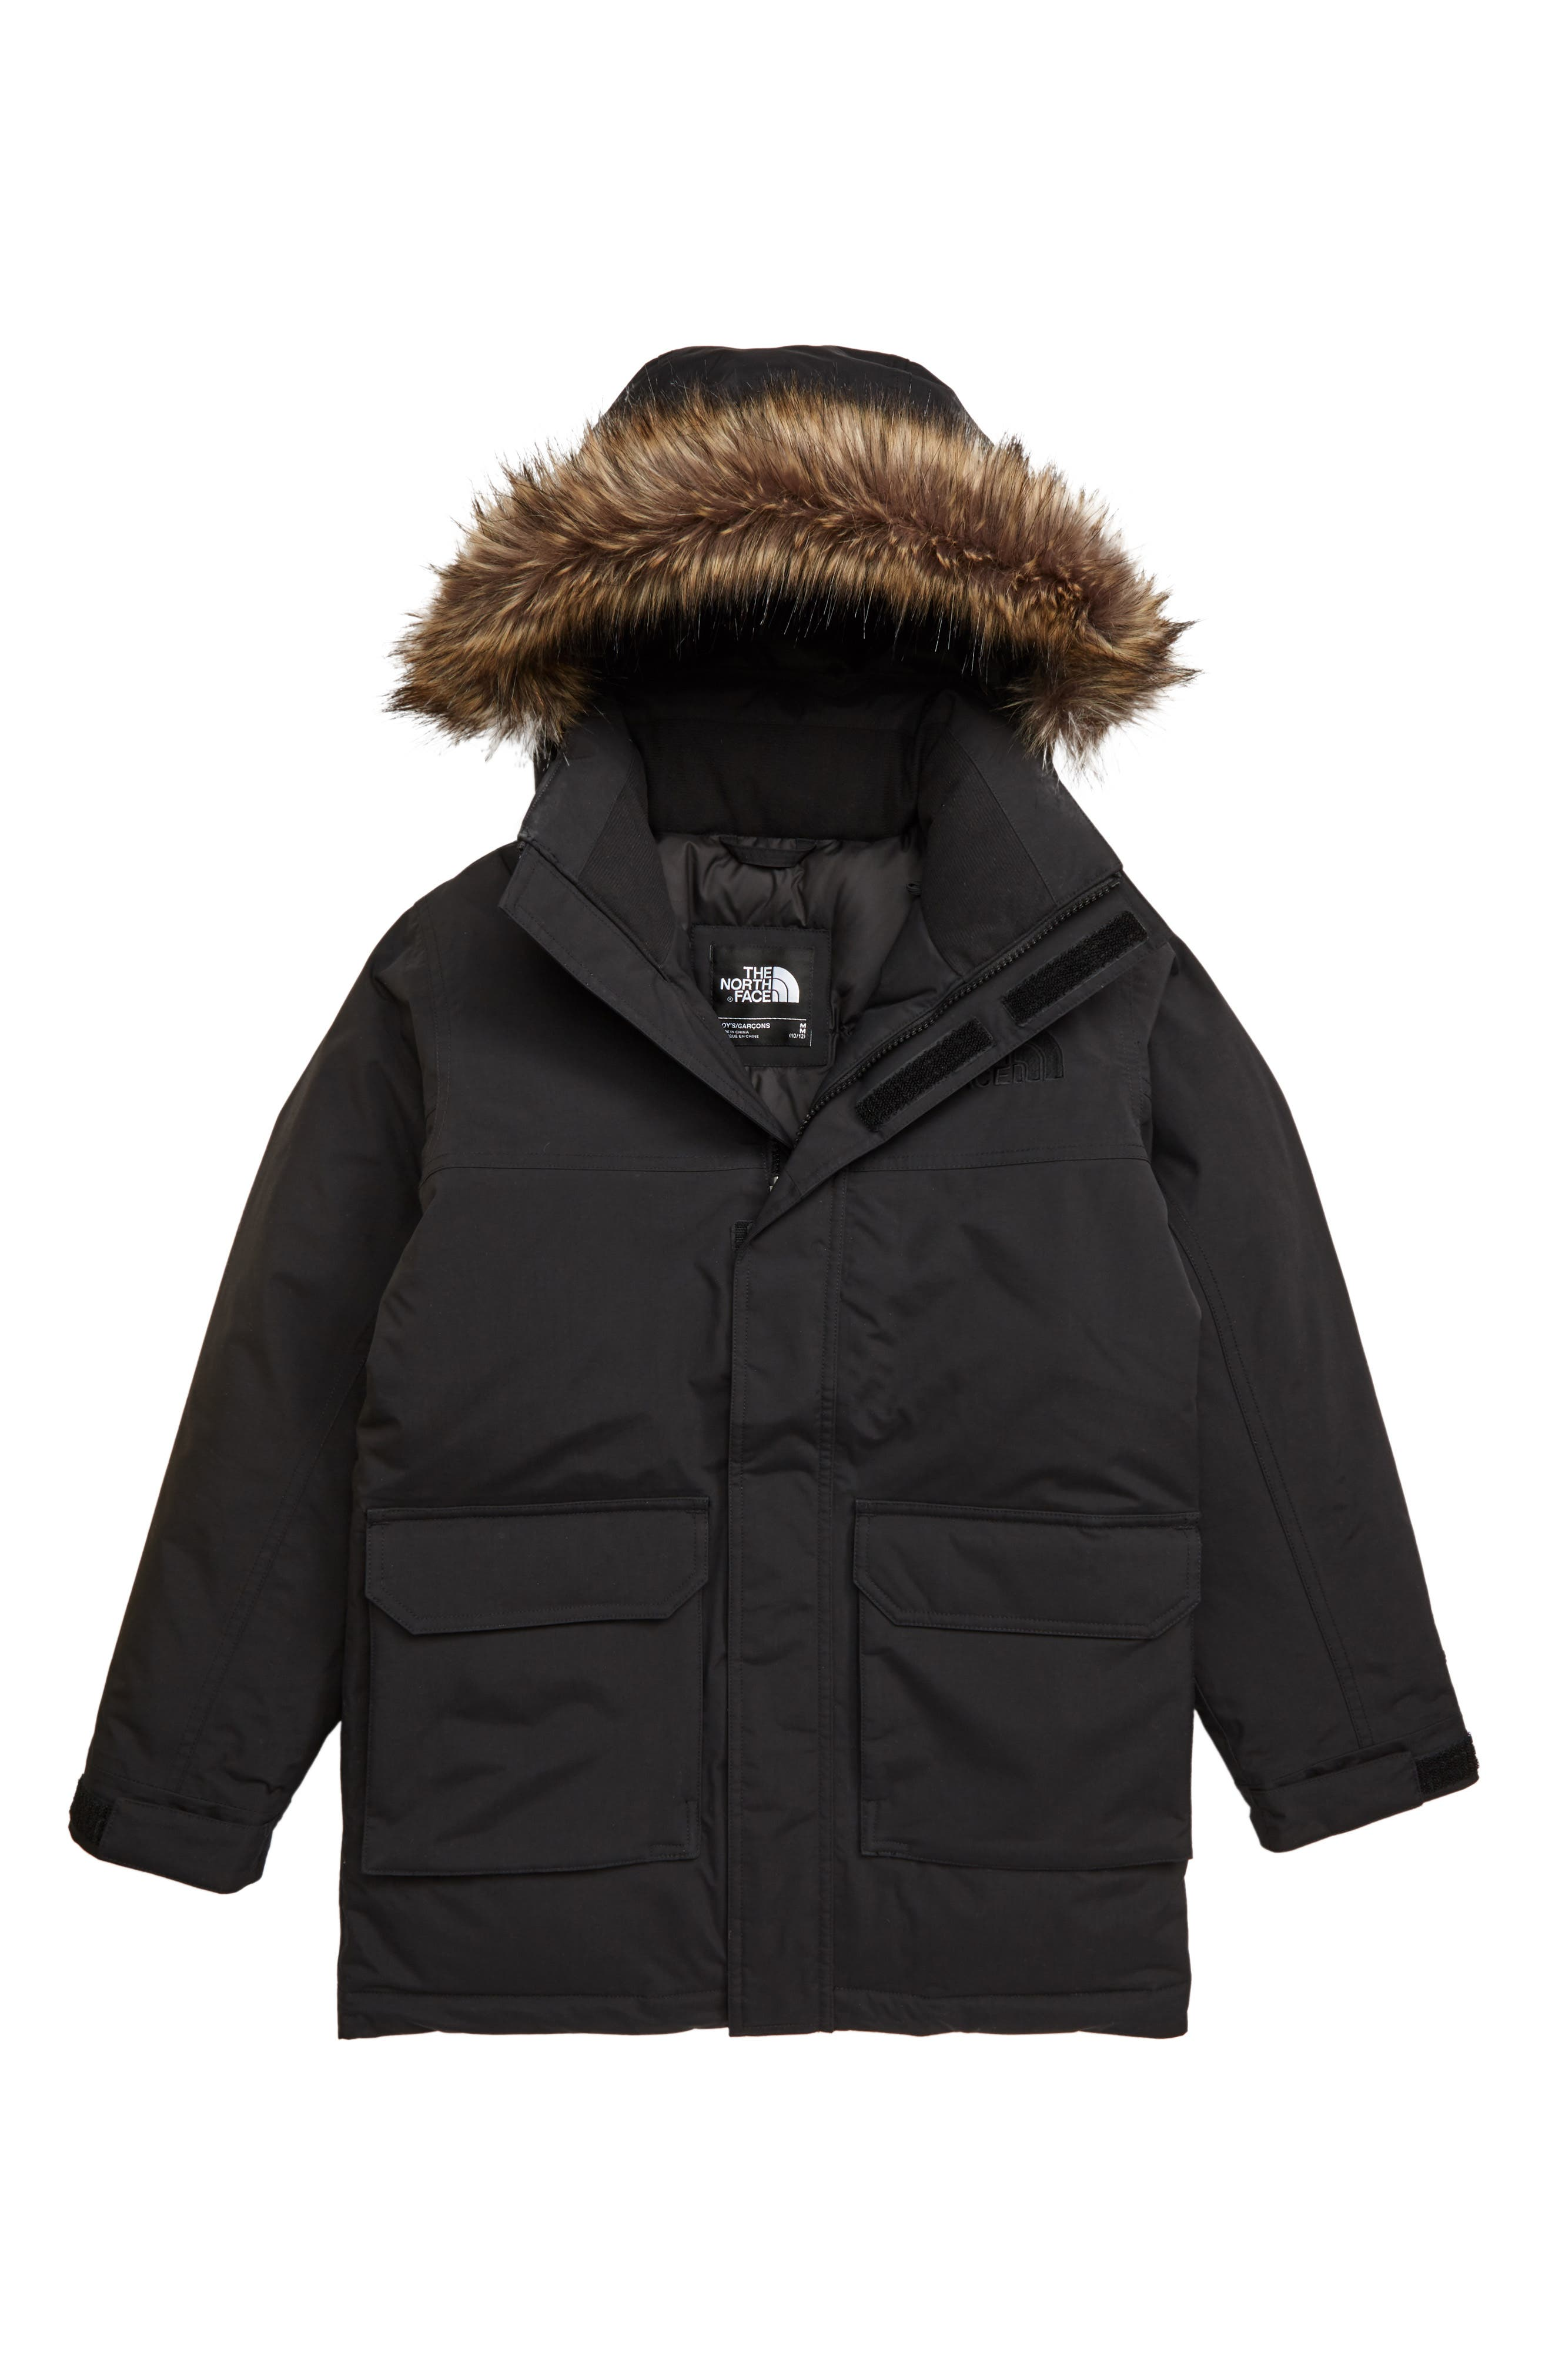 Boys' Coats, Jackets & Outerwear | Nordstrom